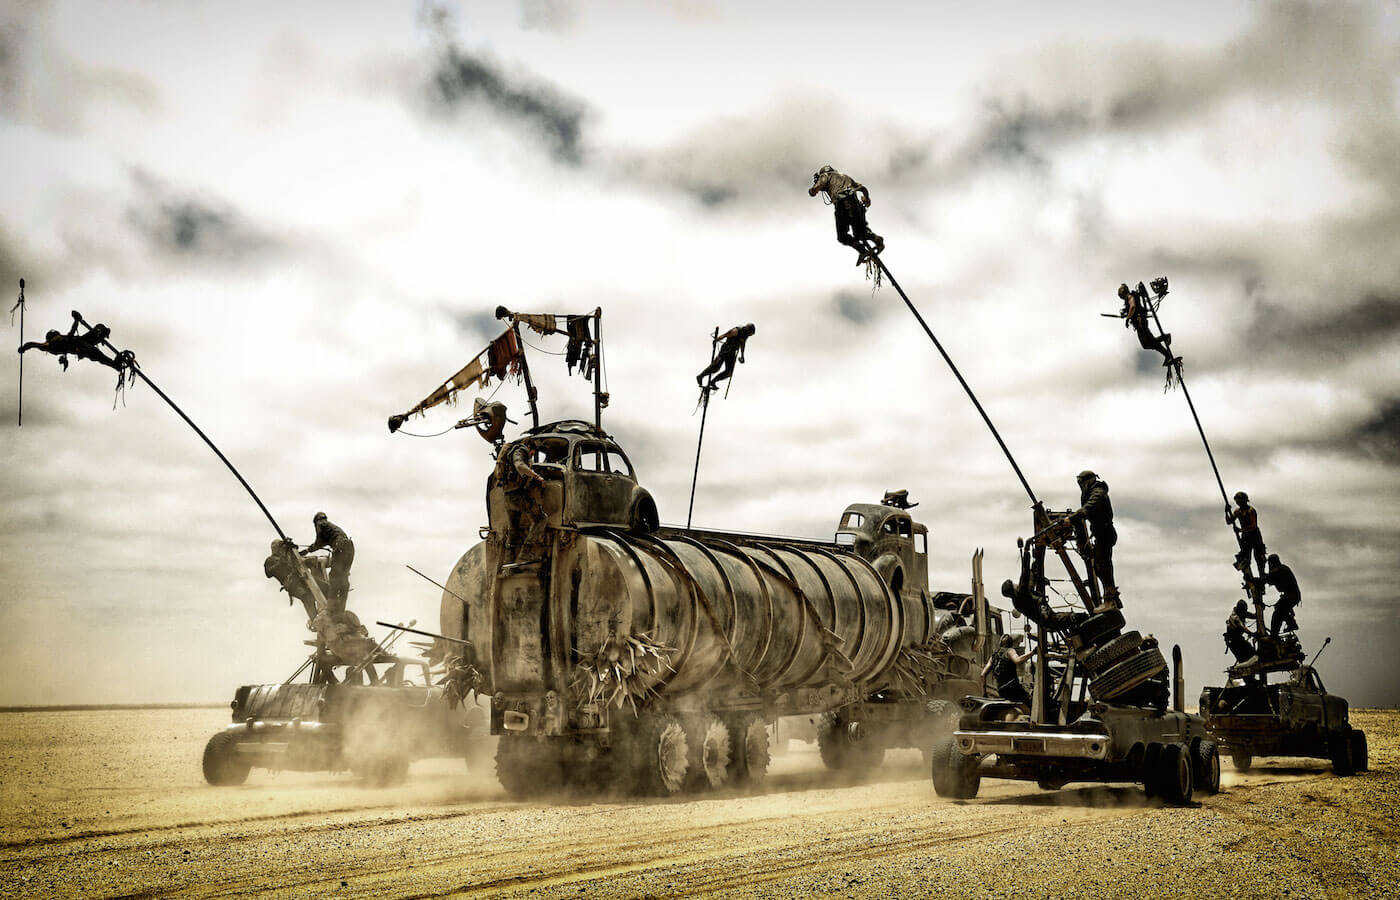 Mad max fury road image the war rig